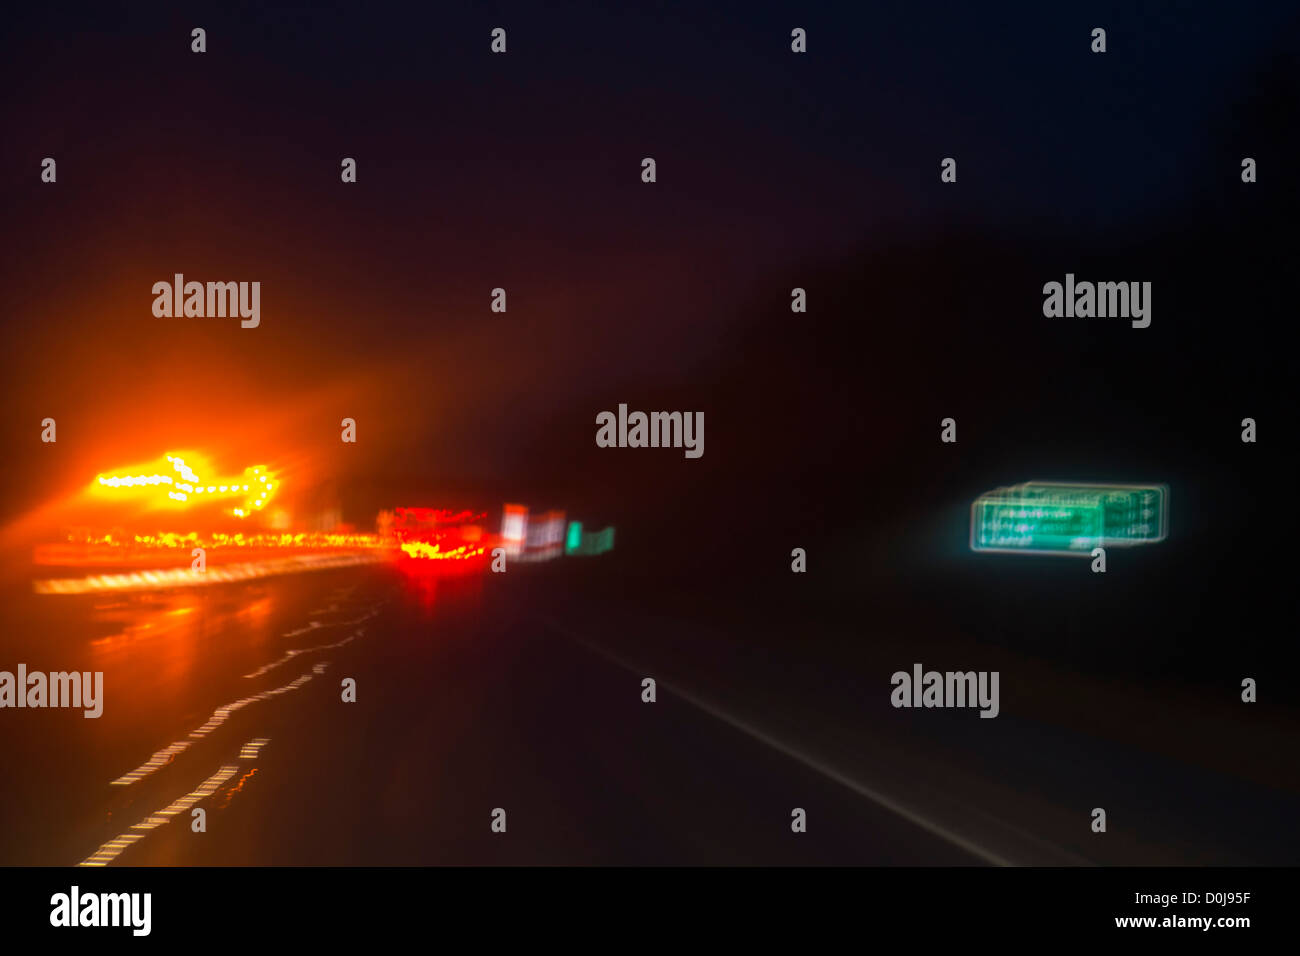 Abstract light patterns on highways. - Stock Image